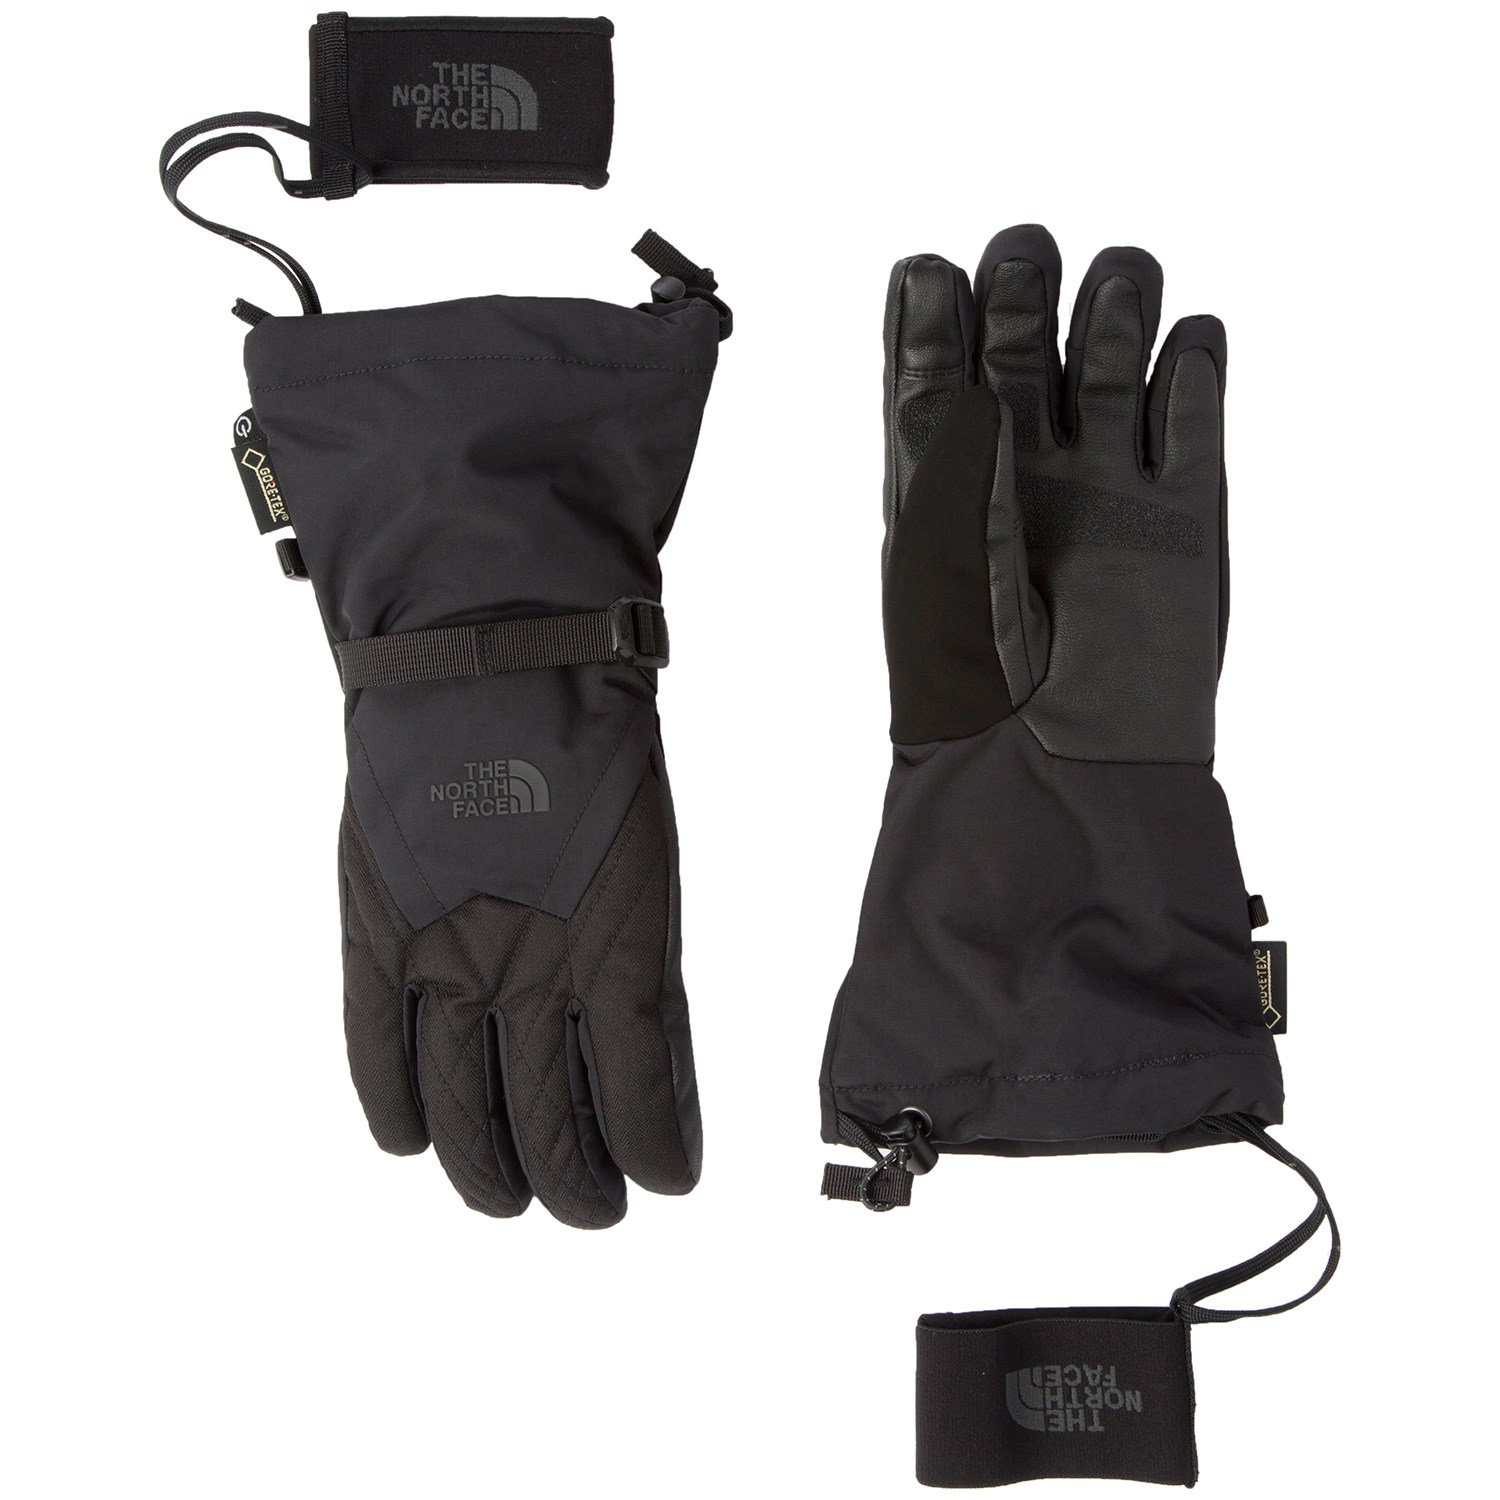 93c523ce3 The North Face Montana GORE-TEX Gloves - Women's